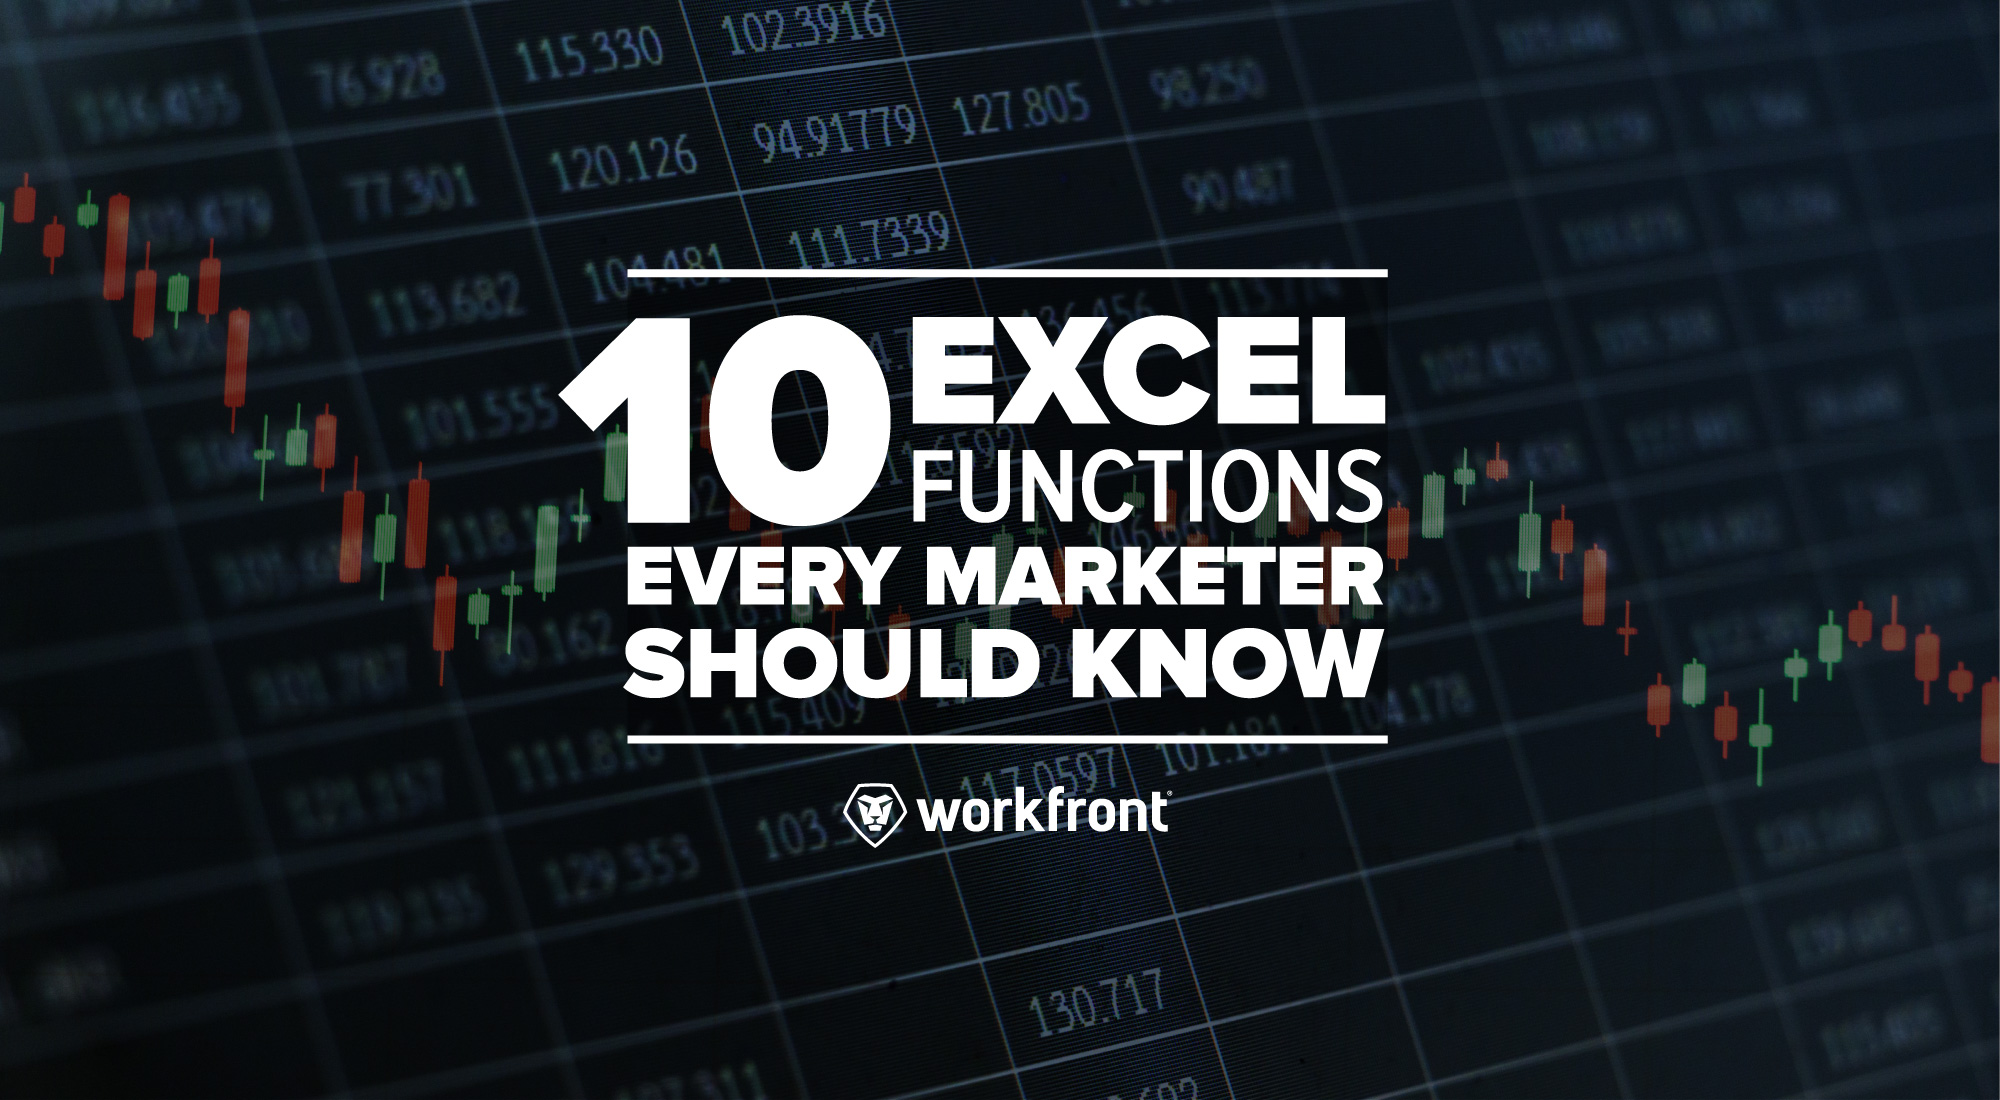 10 Excel Functions Every Marketer Should Know